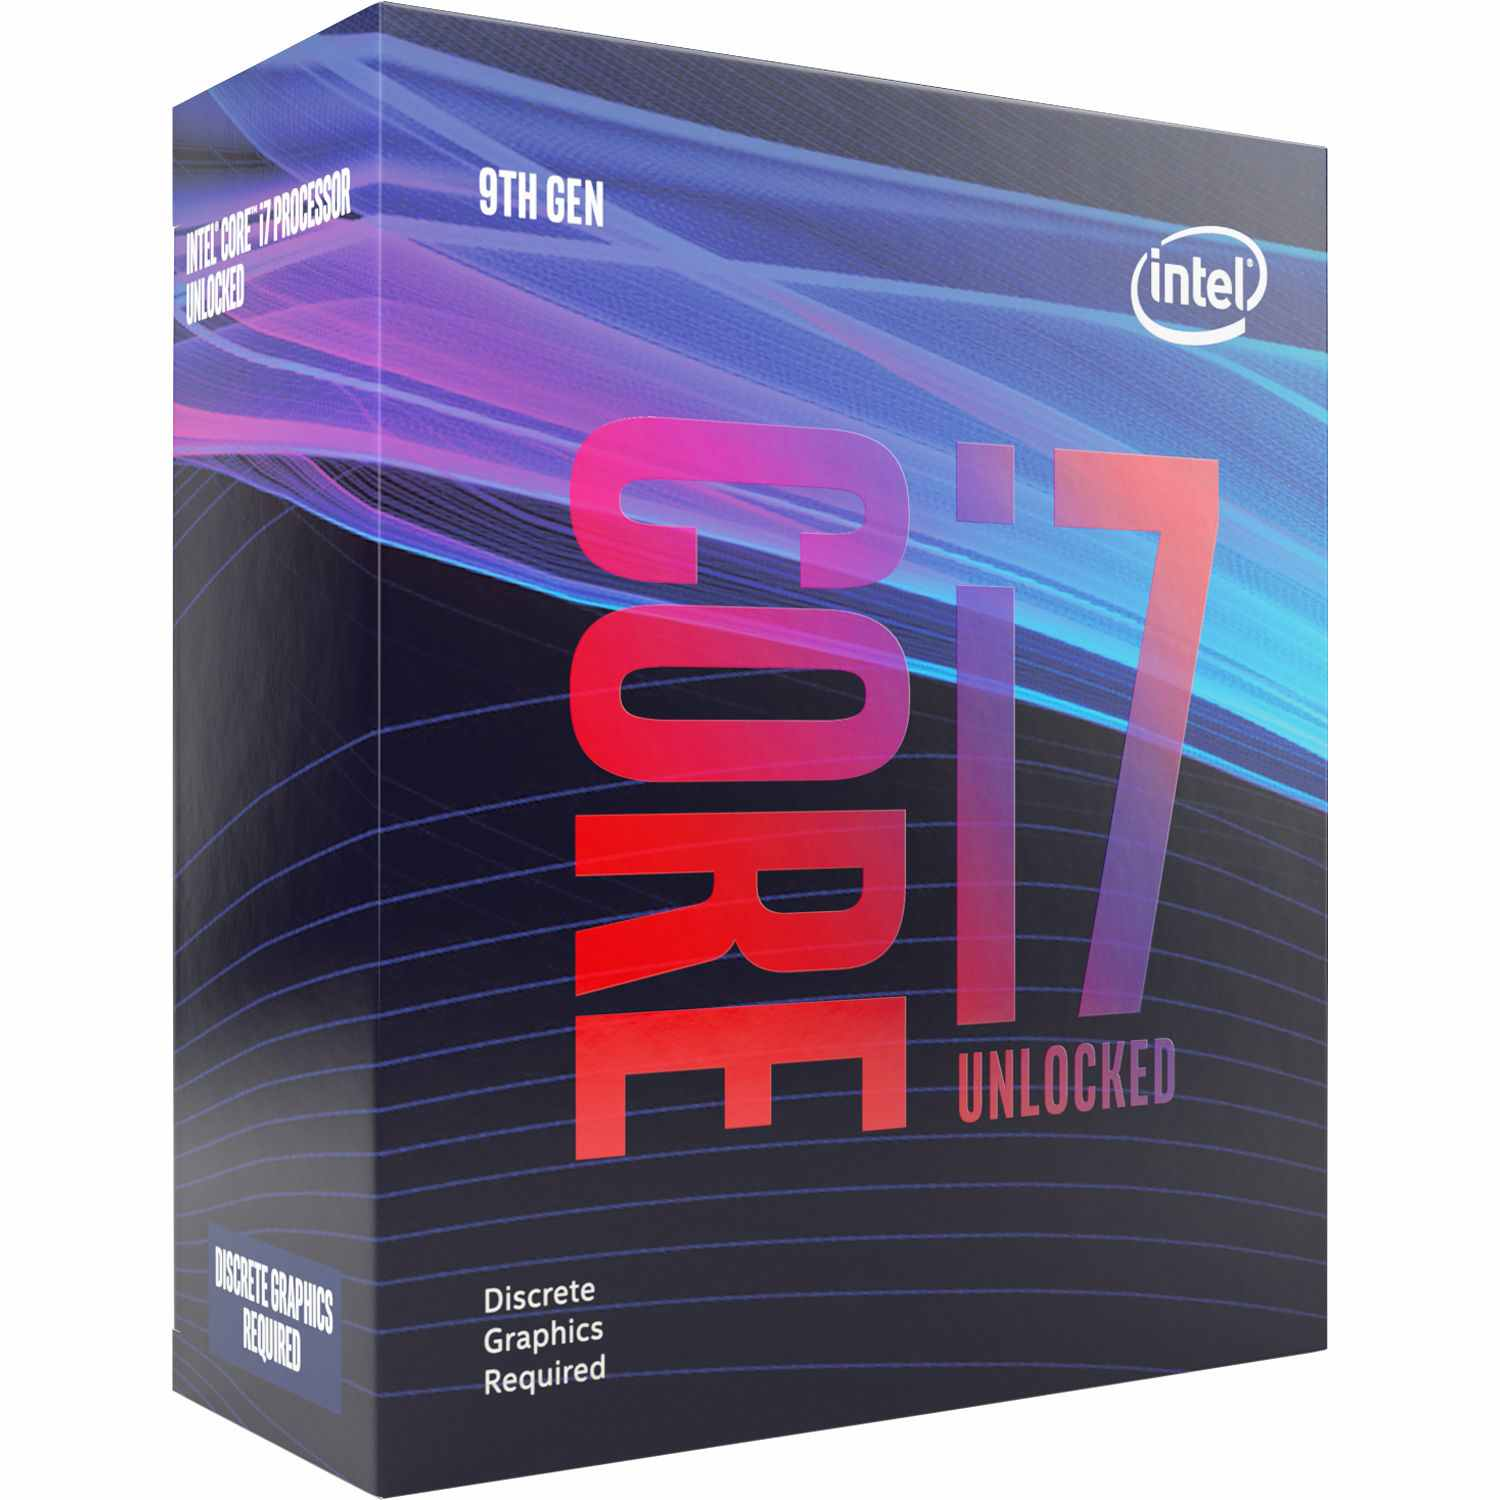 Intel Core i7-9700KF 3.6GHz, 8 Core, 12M Cache, LGA1151 9th